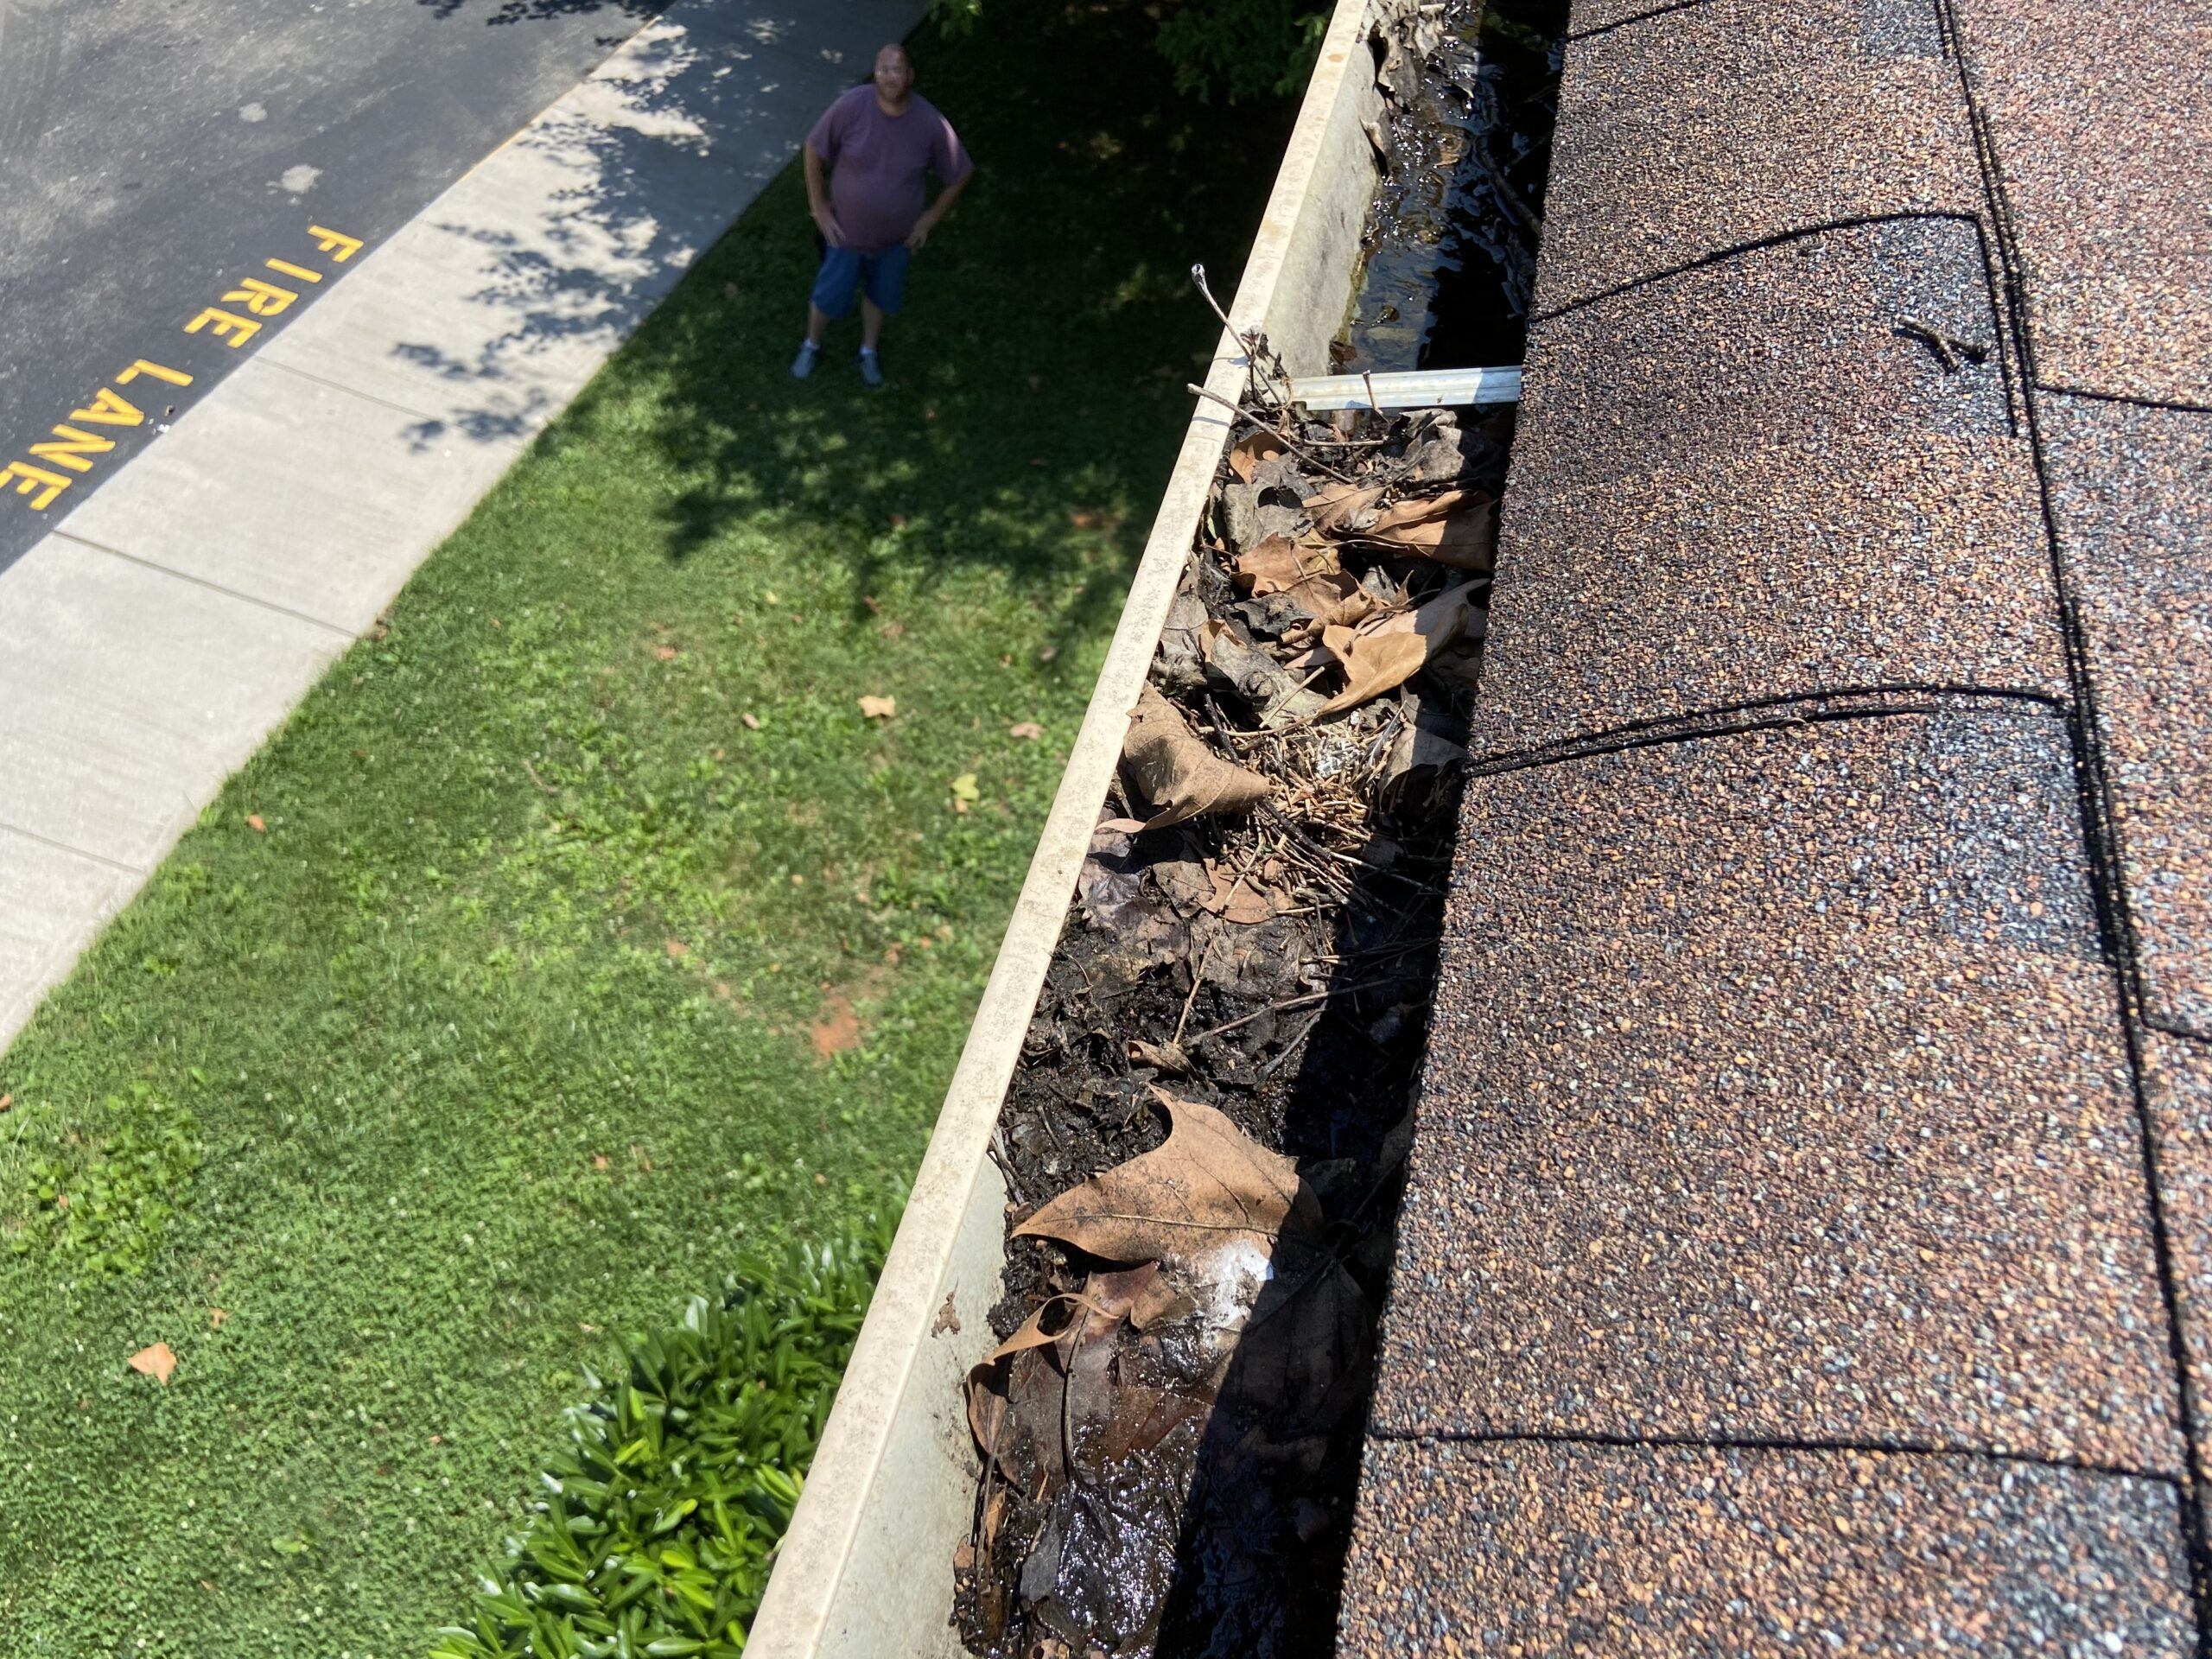 this is another picture of a roof with debris in it